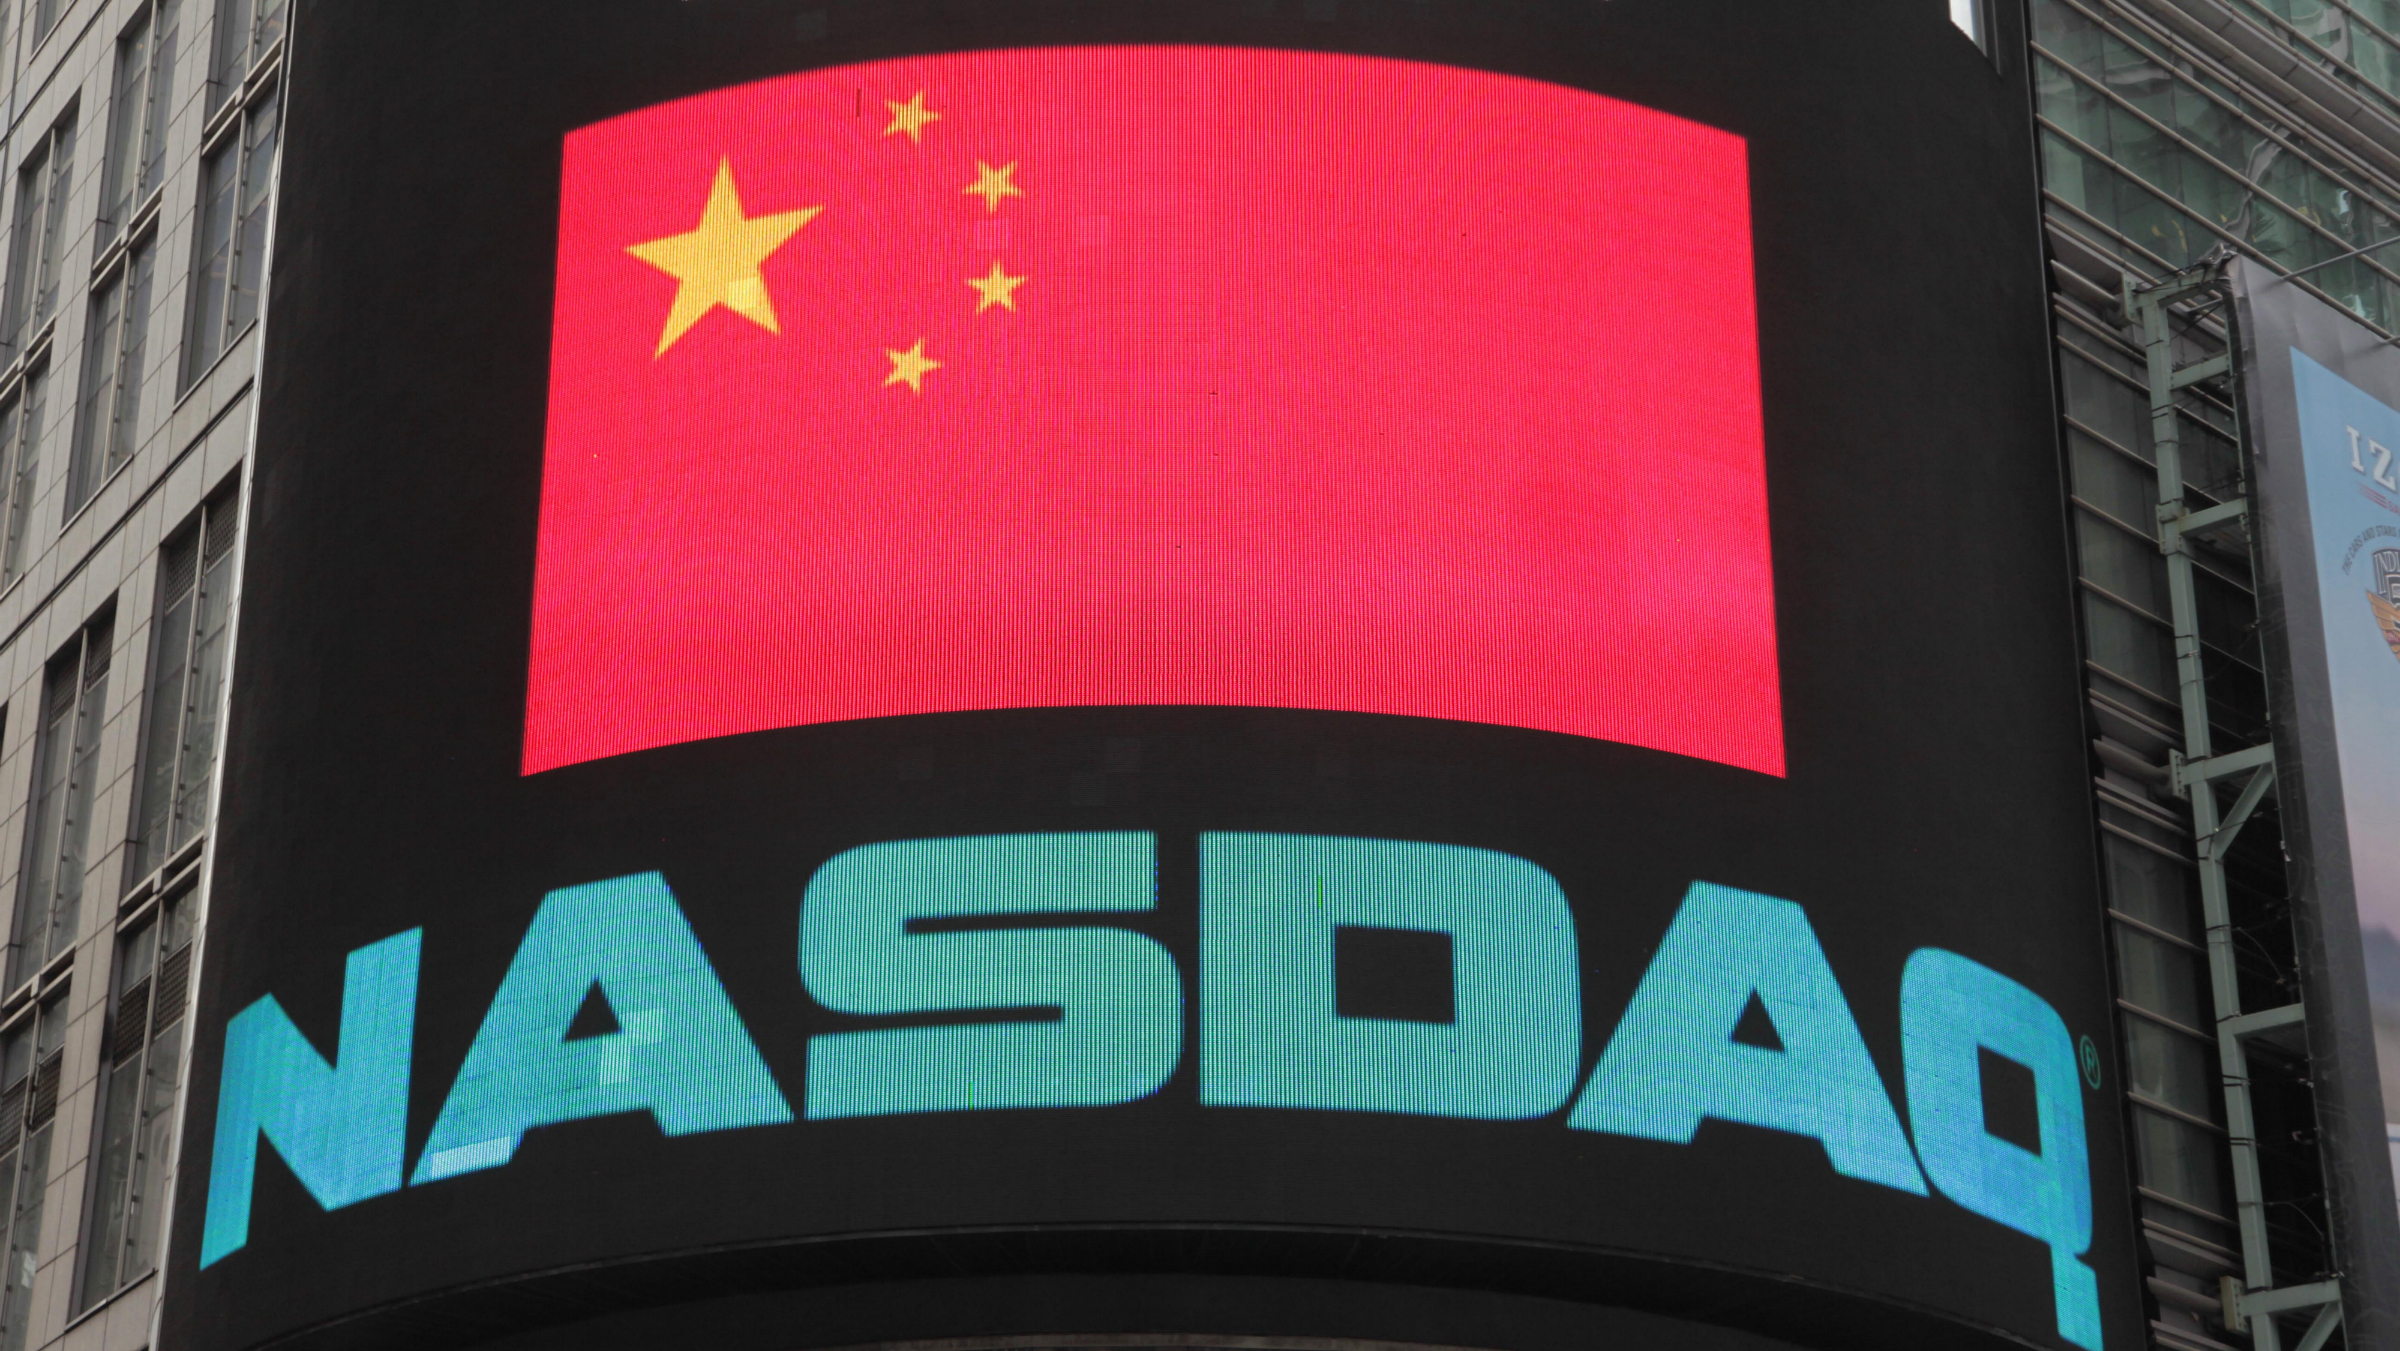 The Chinese flag is displayed on an electronic screen at Nasdaq, Wednesday, May 11, 2011 in New York. Jiayuan.com, China's largest dating website, failed to price in its IPO at Nasdaq.